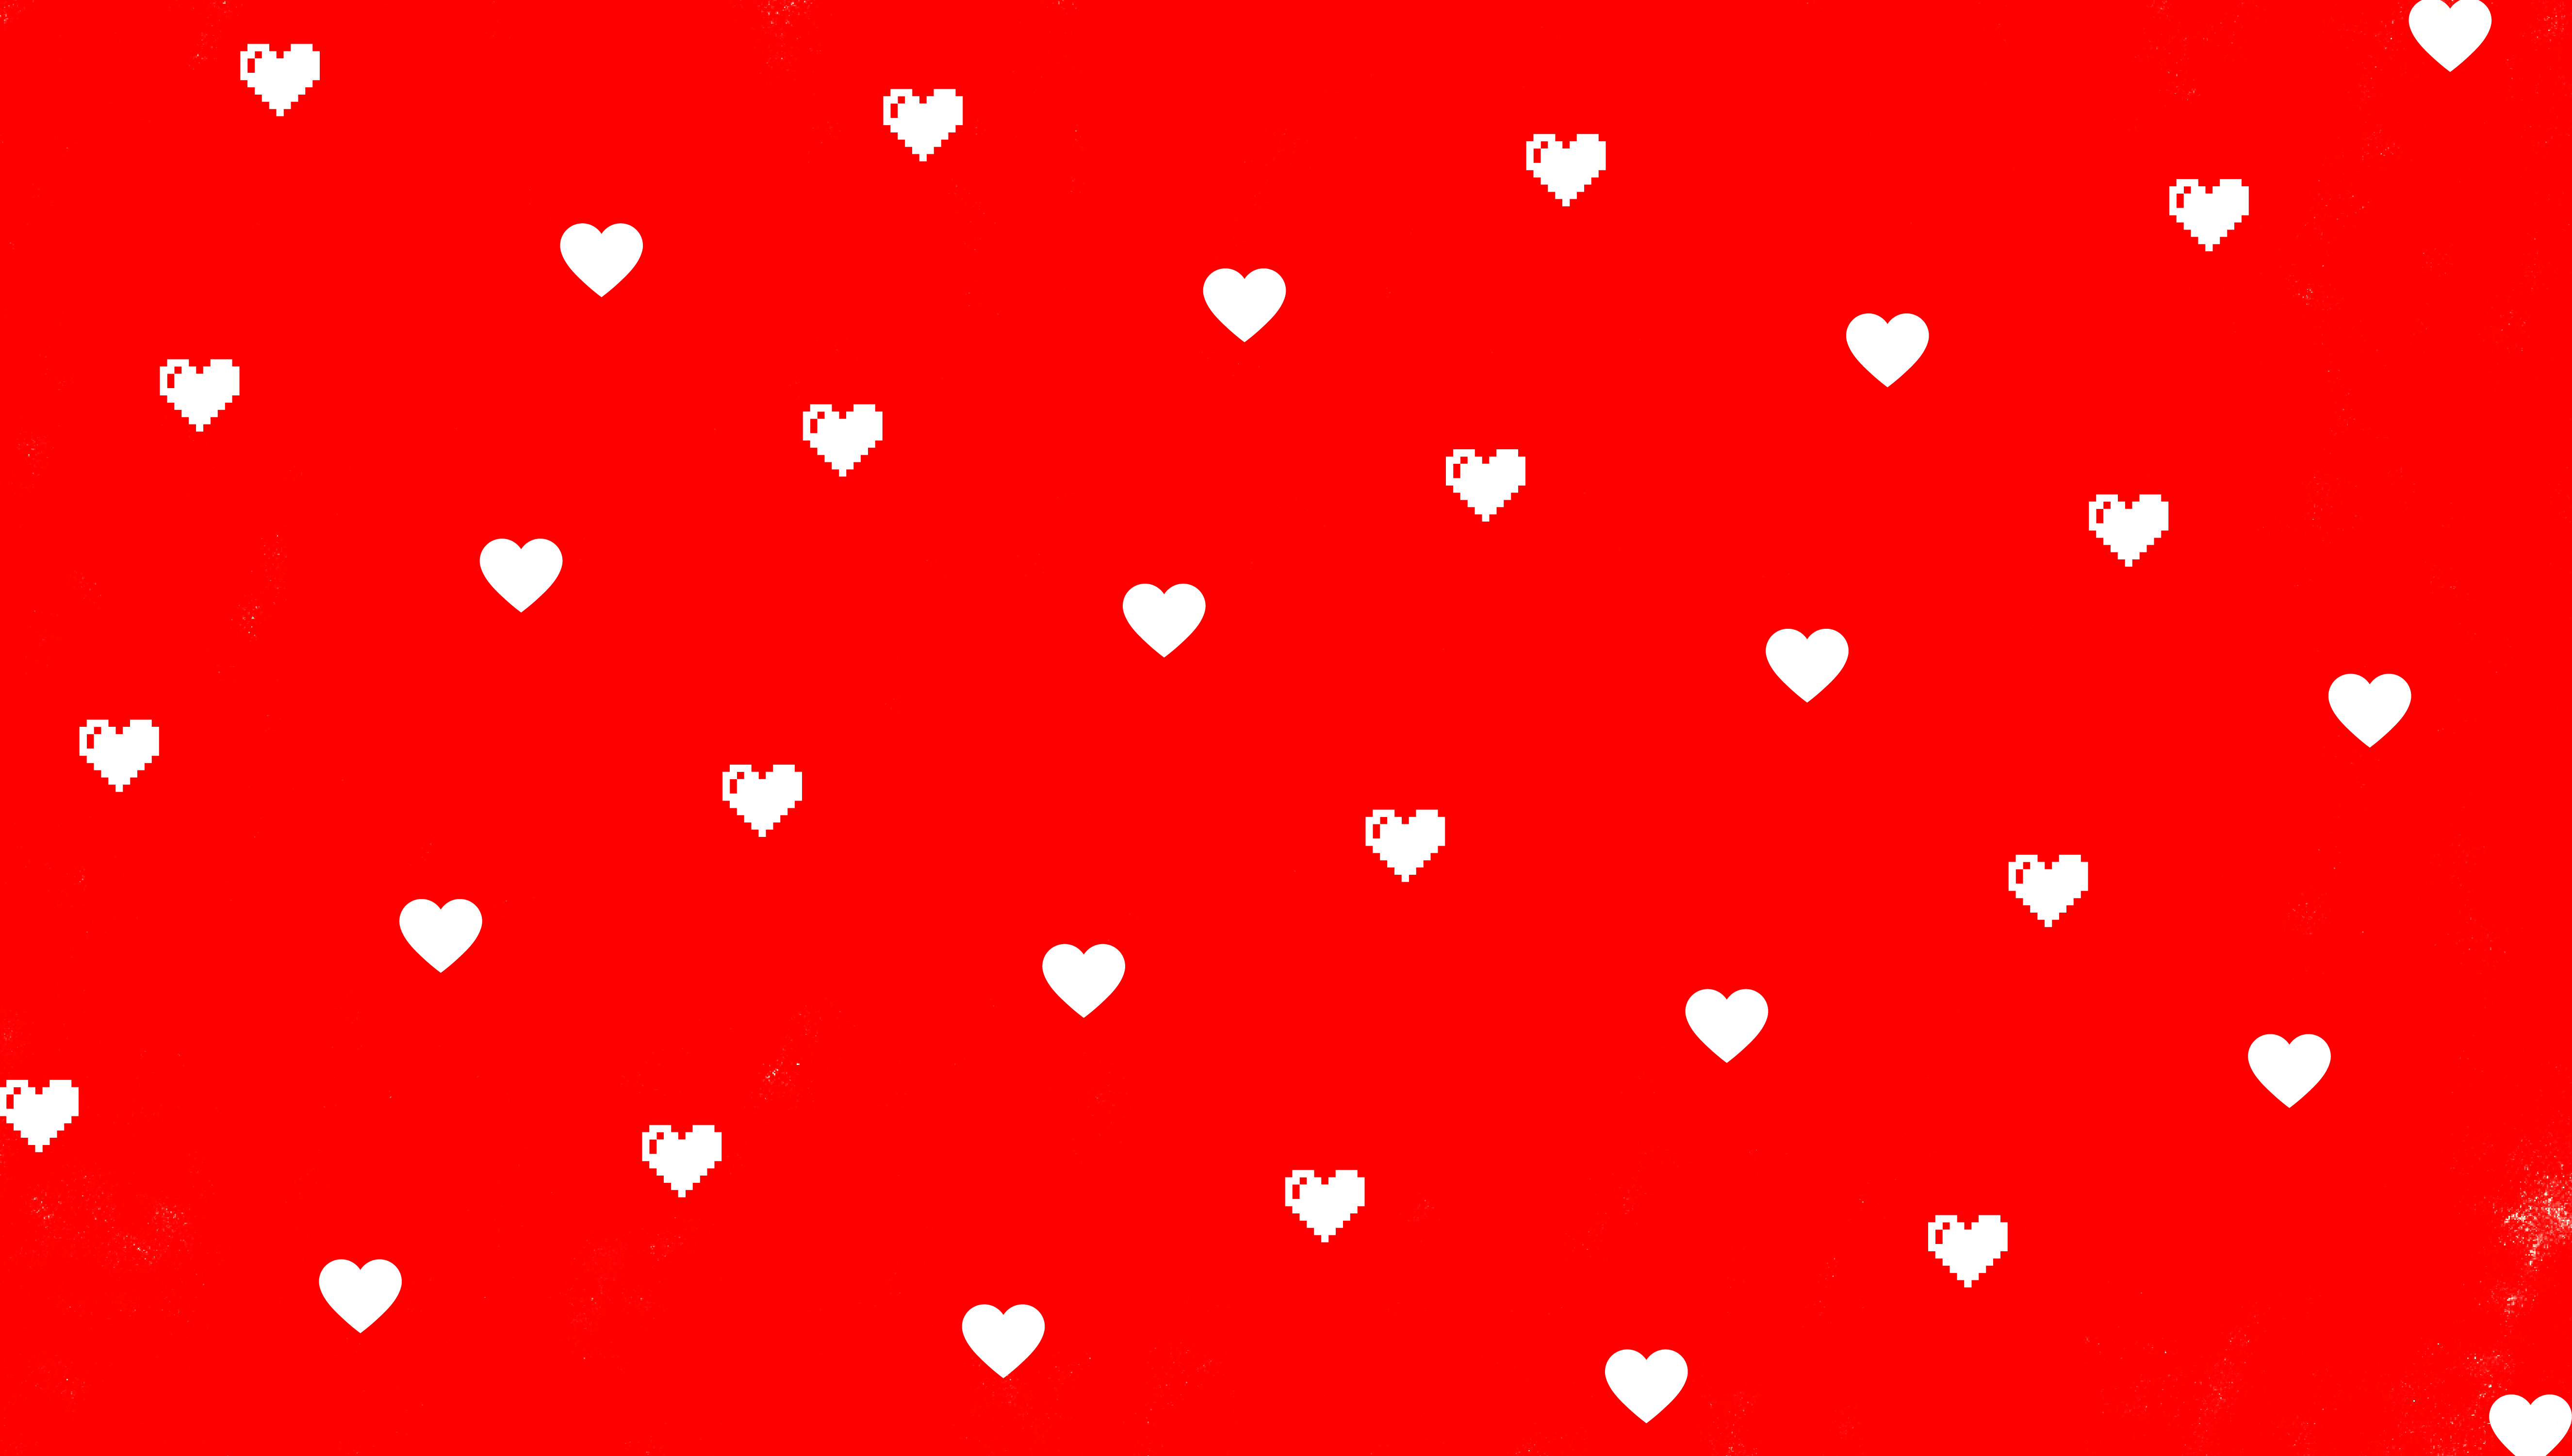 Love hearts on a red background